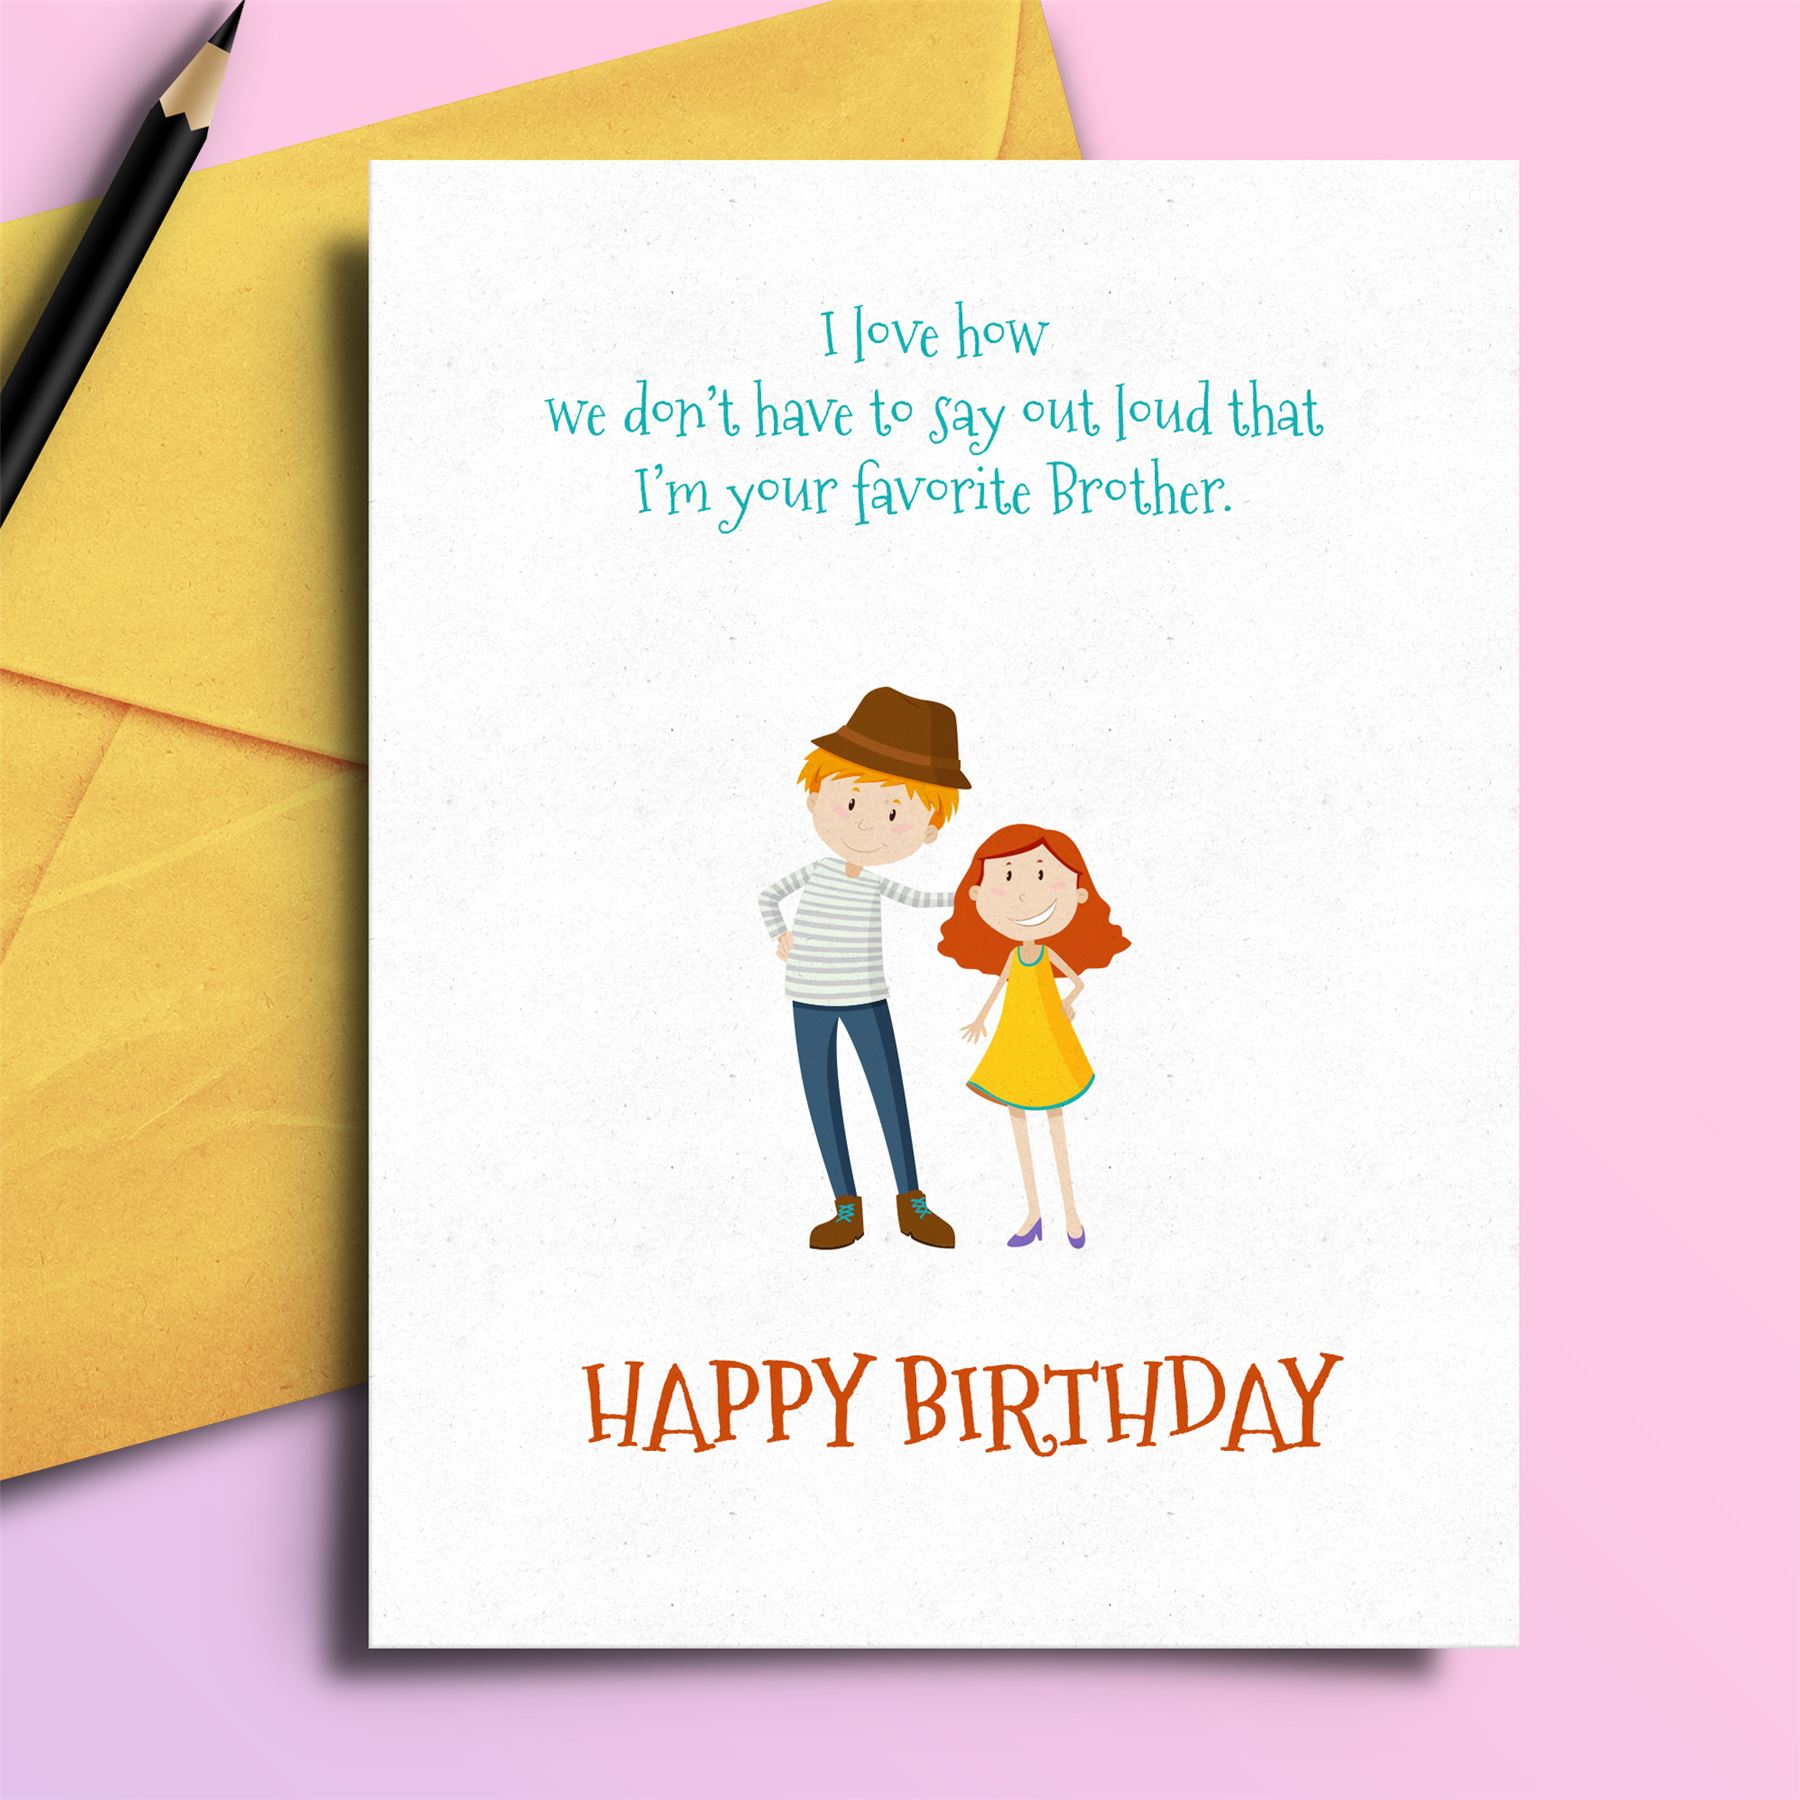 Insulting birthday card sarcasm funny for brother 7435457234235 ebay image is loading insulting birthday card sarcasm funny for brother m4hsunfo